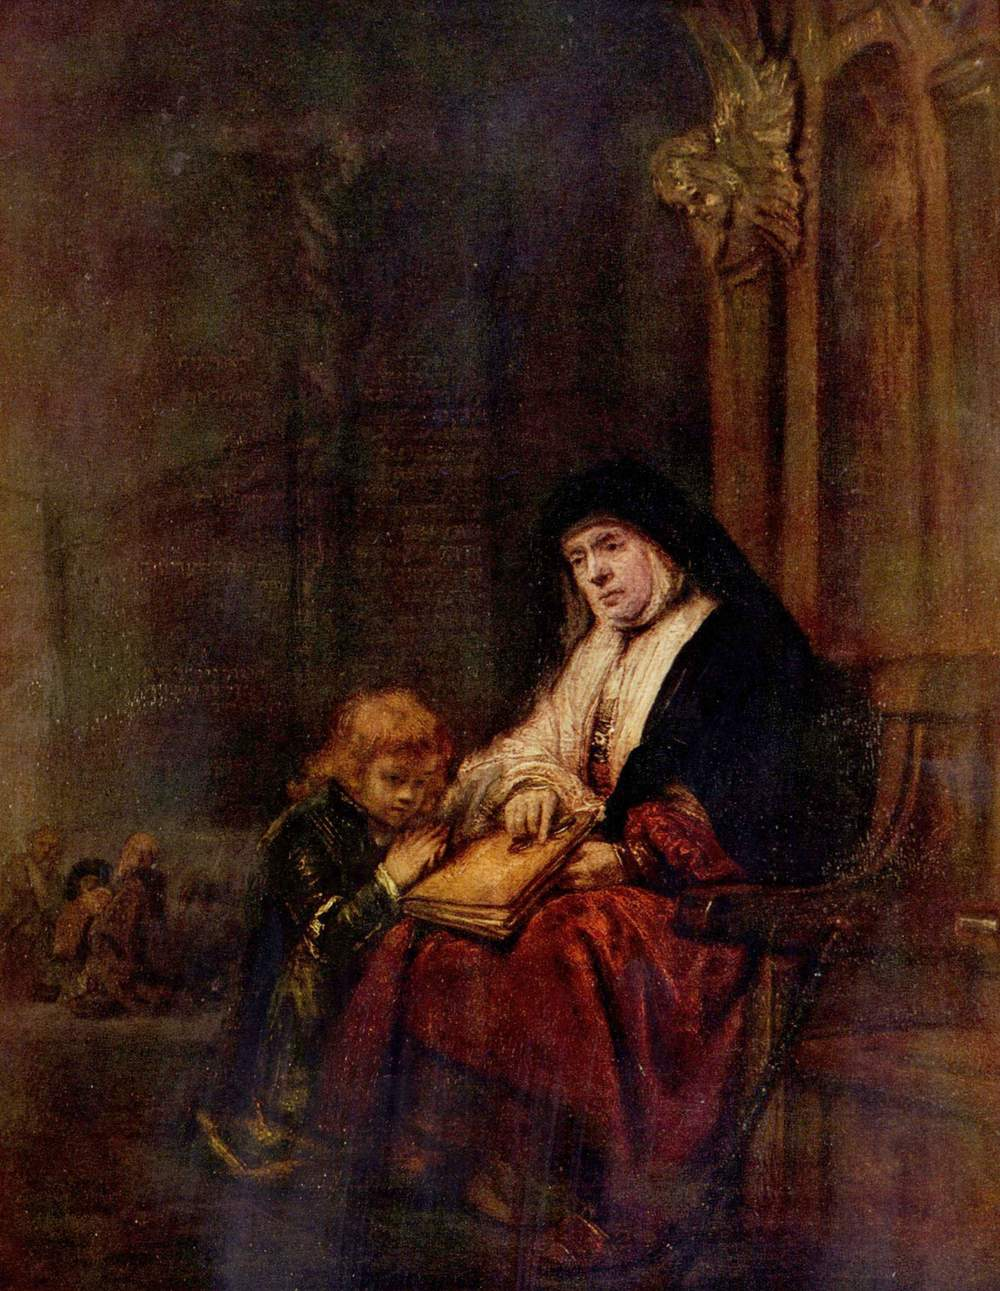 Rembrandt, Timothy and his Grandmother, 1648